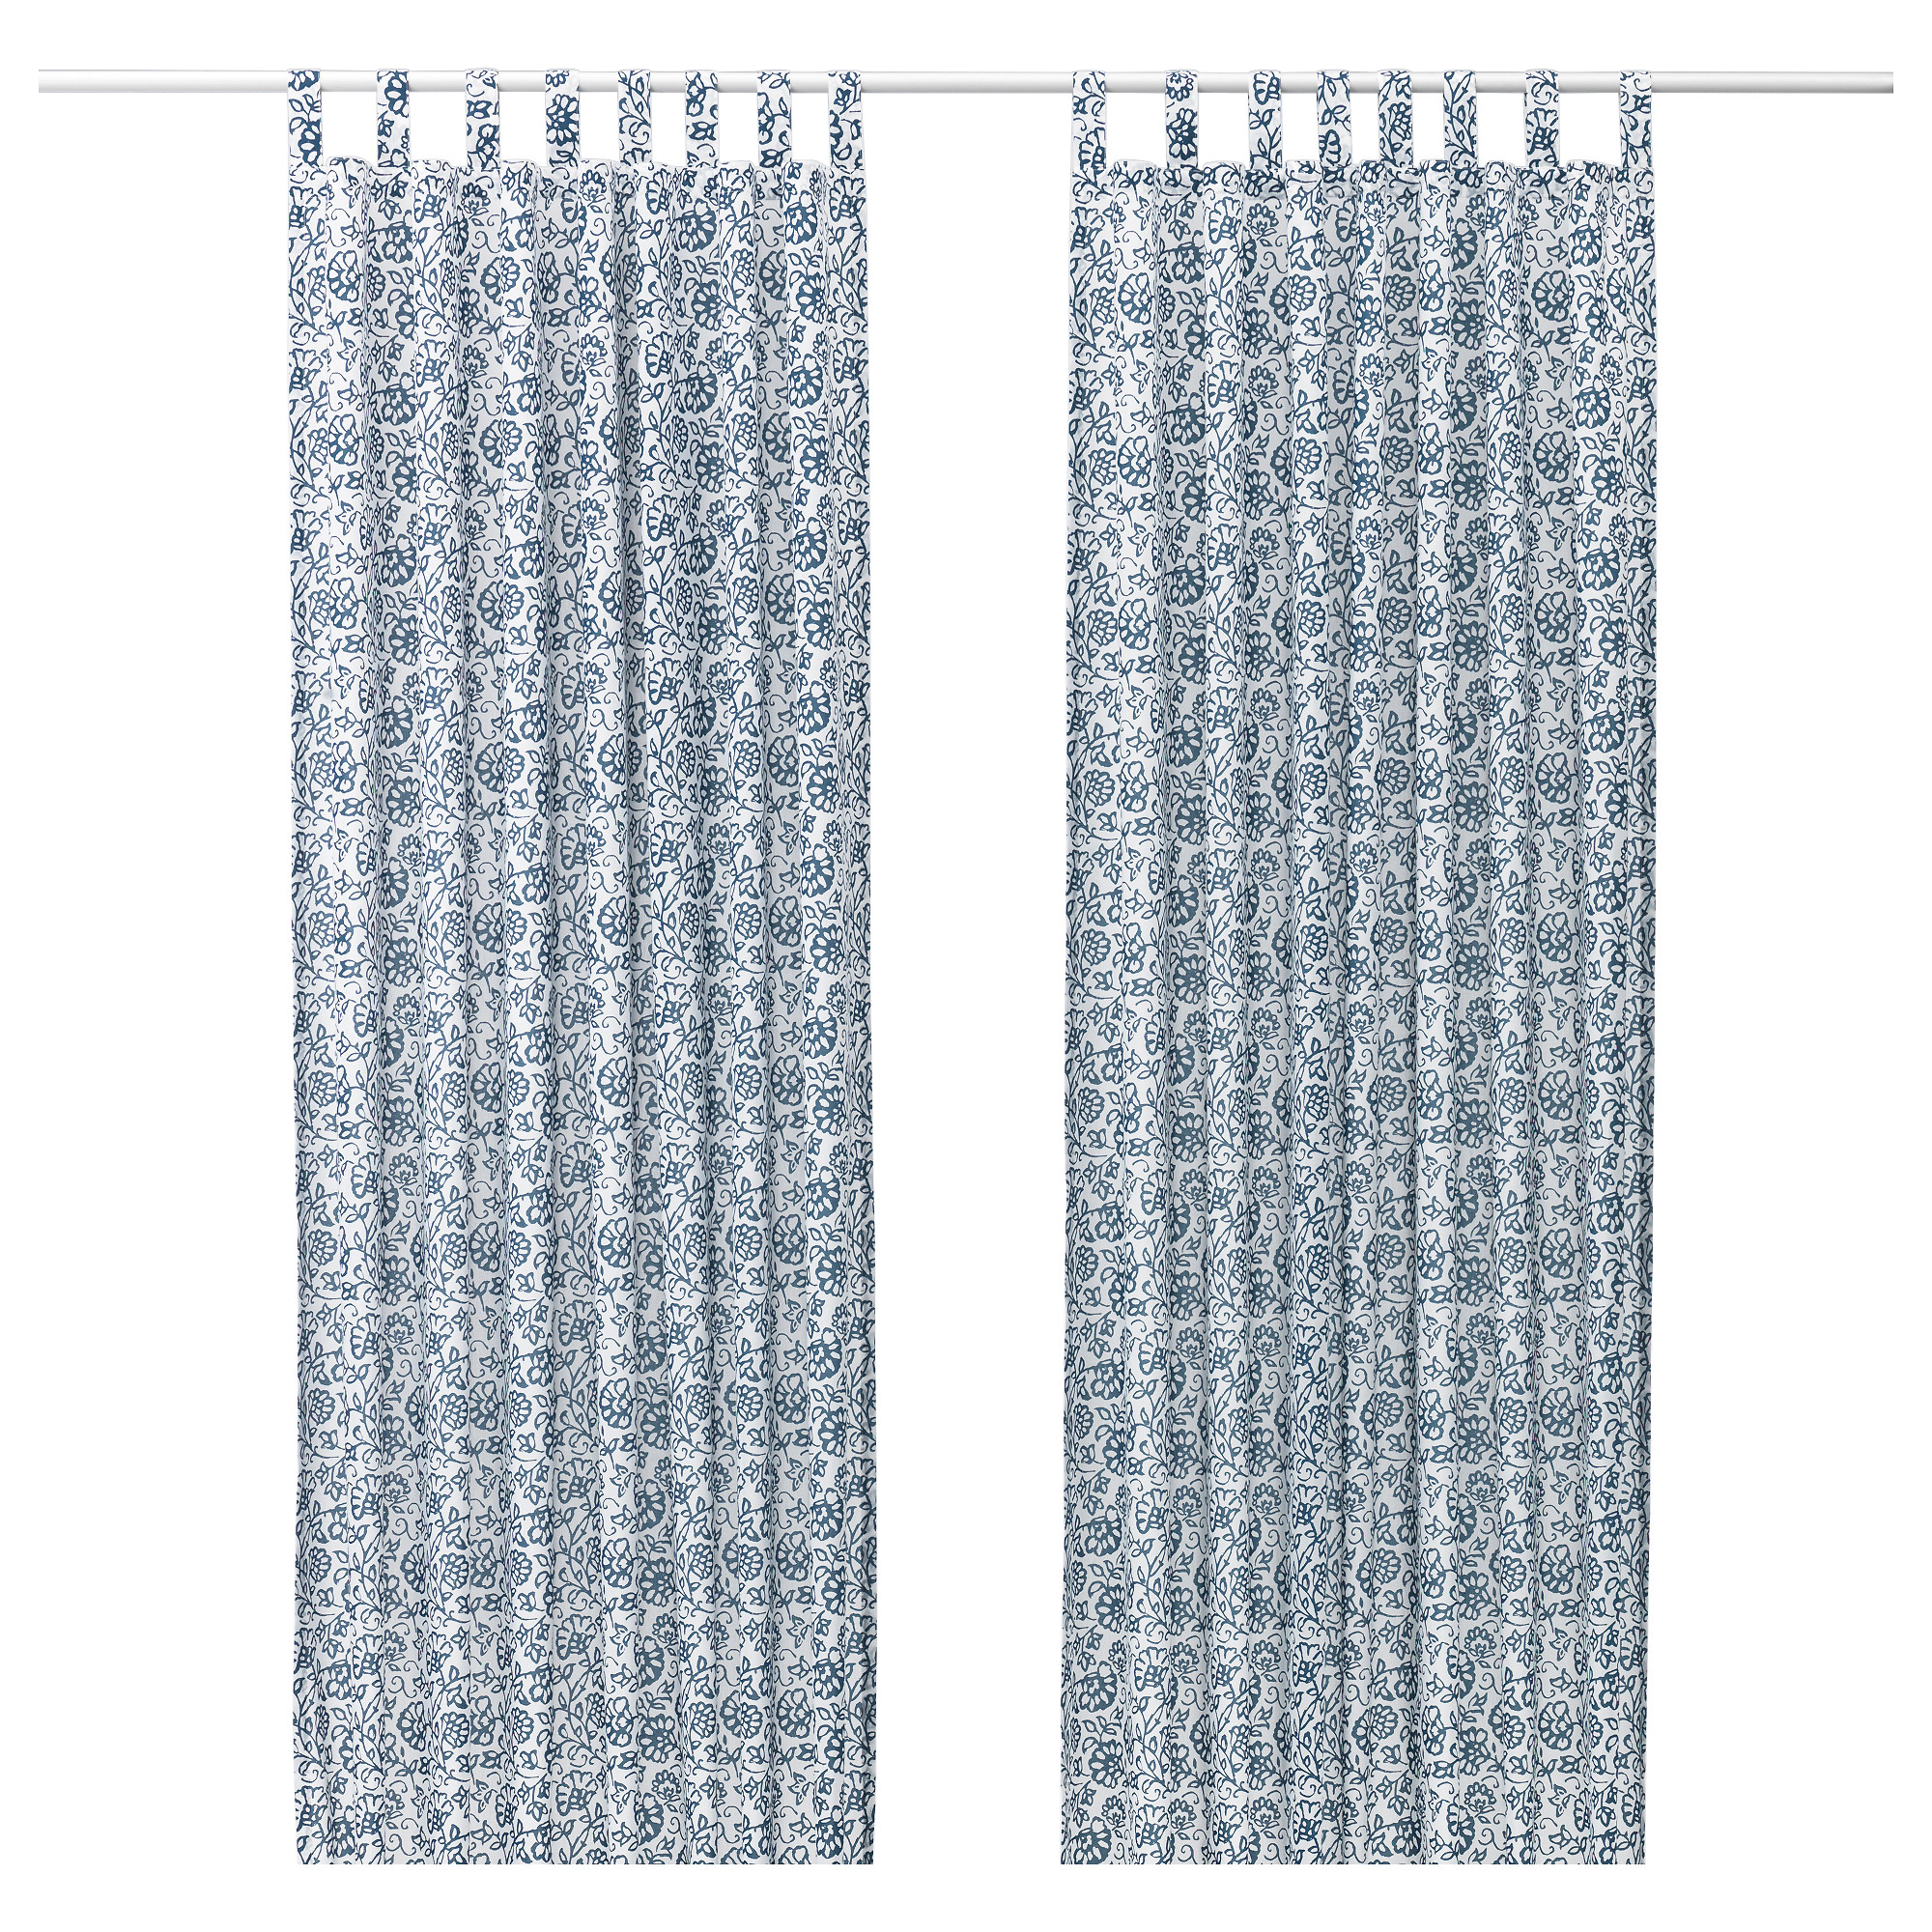 Yellow curtains ikea - Mj Lk Rt Curtains 1 Pair Blue White Length 98 Width 57